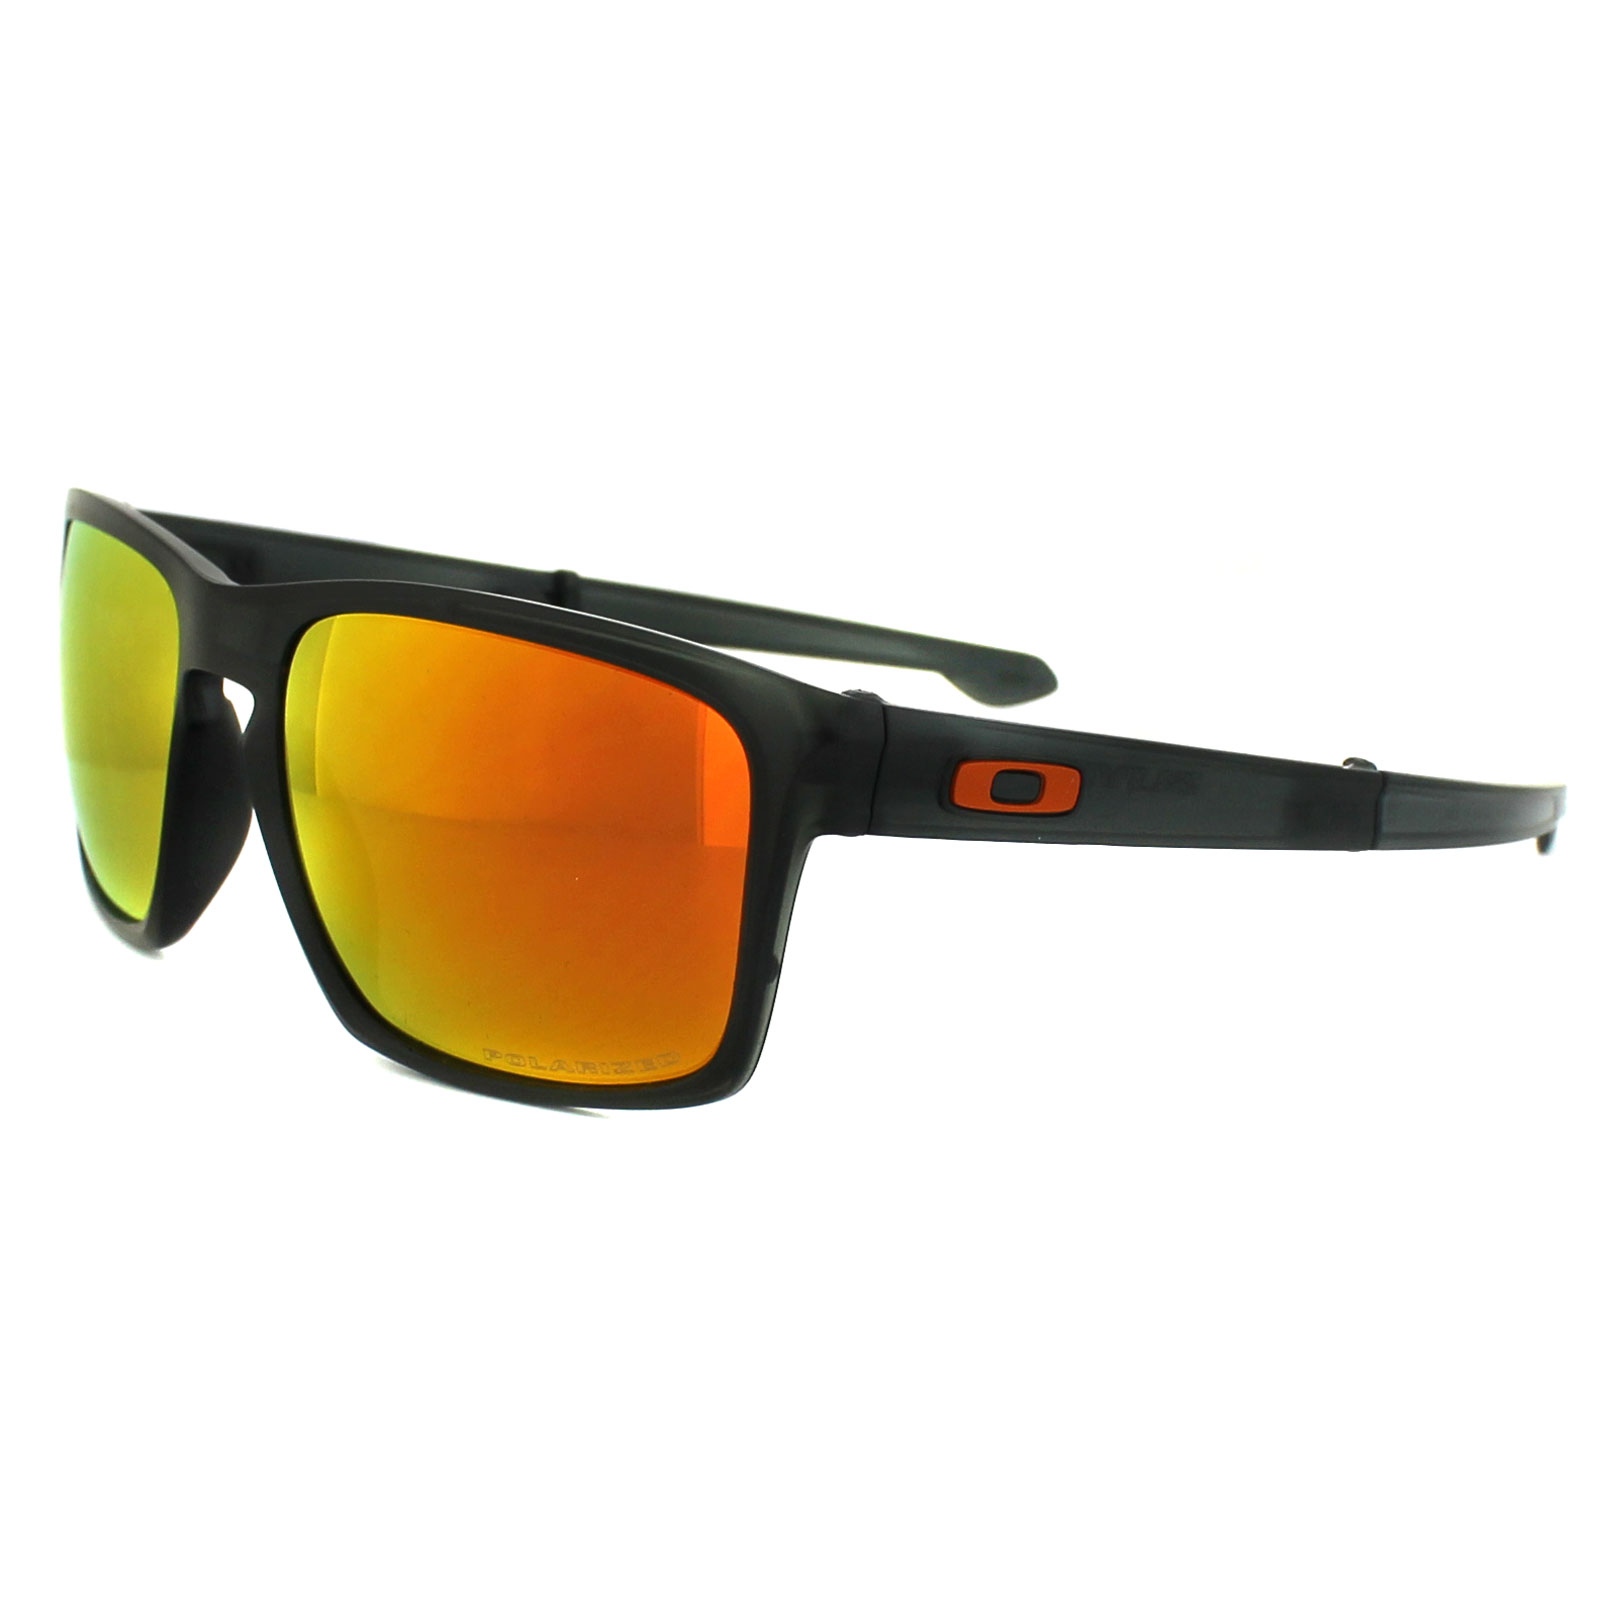 ebe7f1585f Discounted Oakley Sunglasses For Firefighters « Heritage Malta